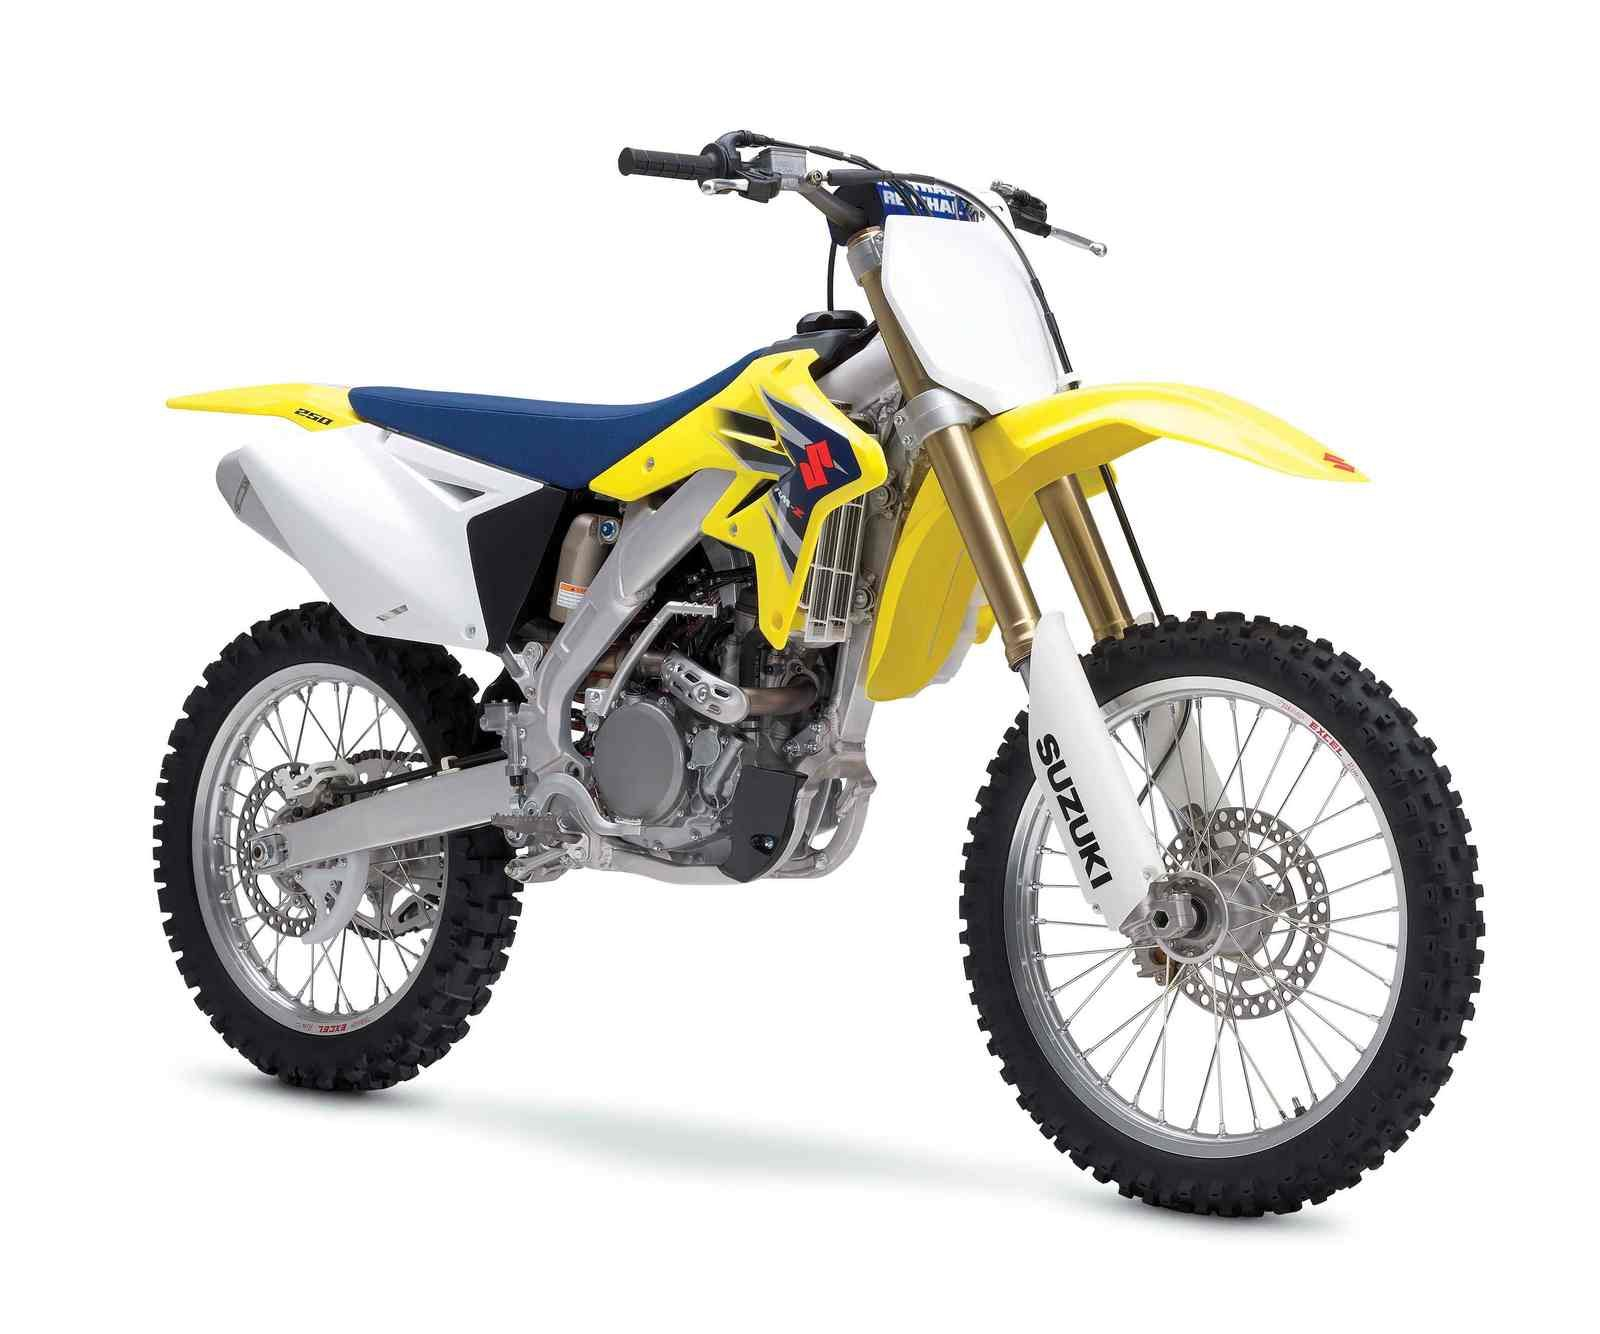 Motorcycle Review Top Speed: 2007 Suzuki RM-Z250 - Picture 140971